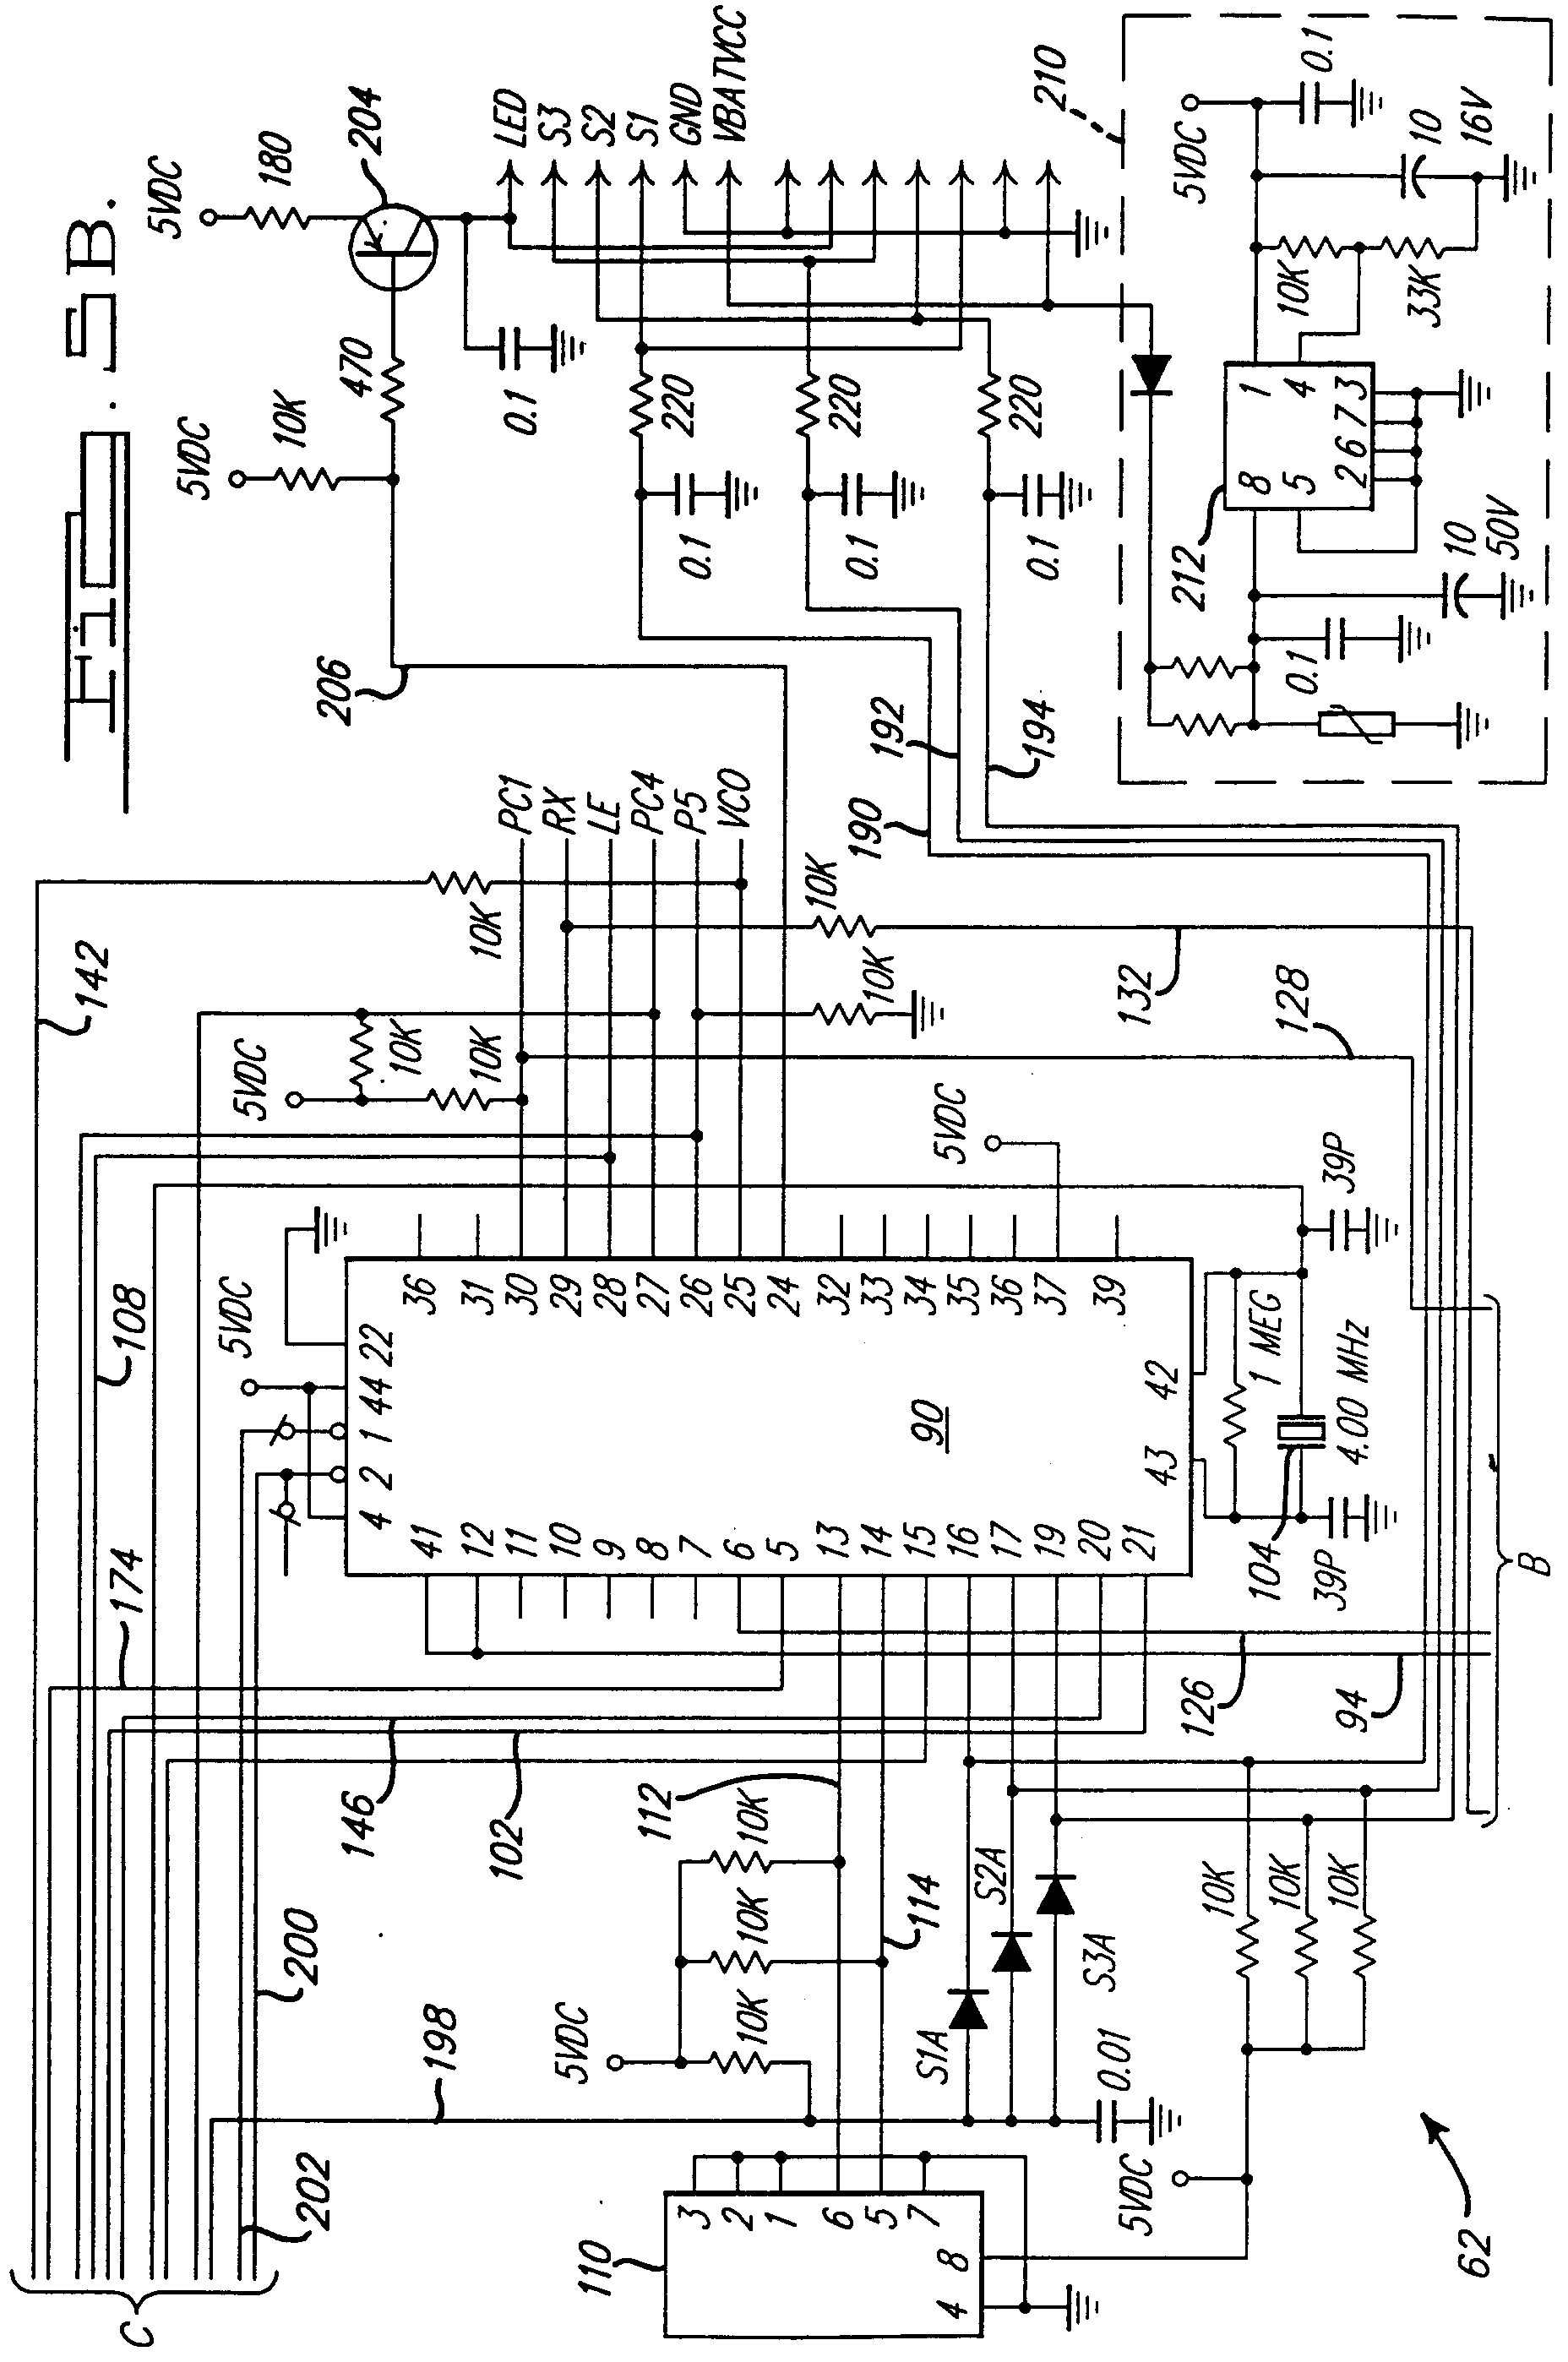 hight resolution of garage door opener circuit board schematic wiring diagram auto genie garage door opener circuit board schematic